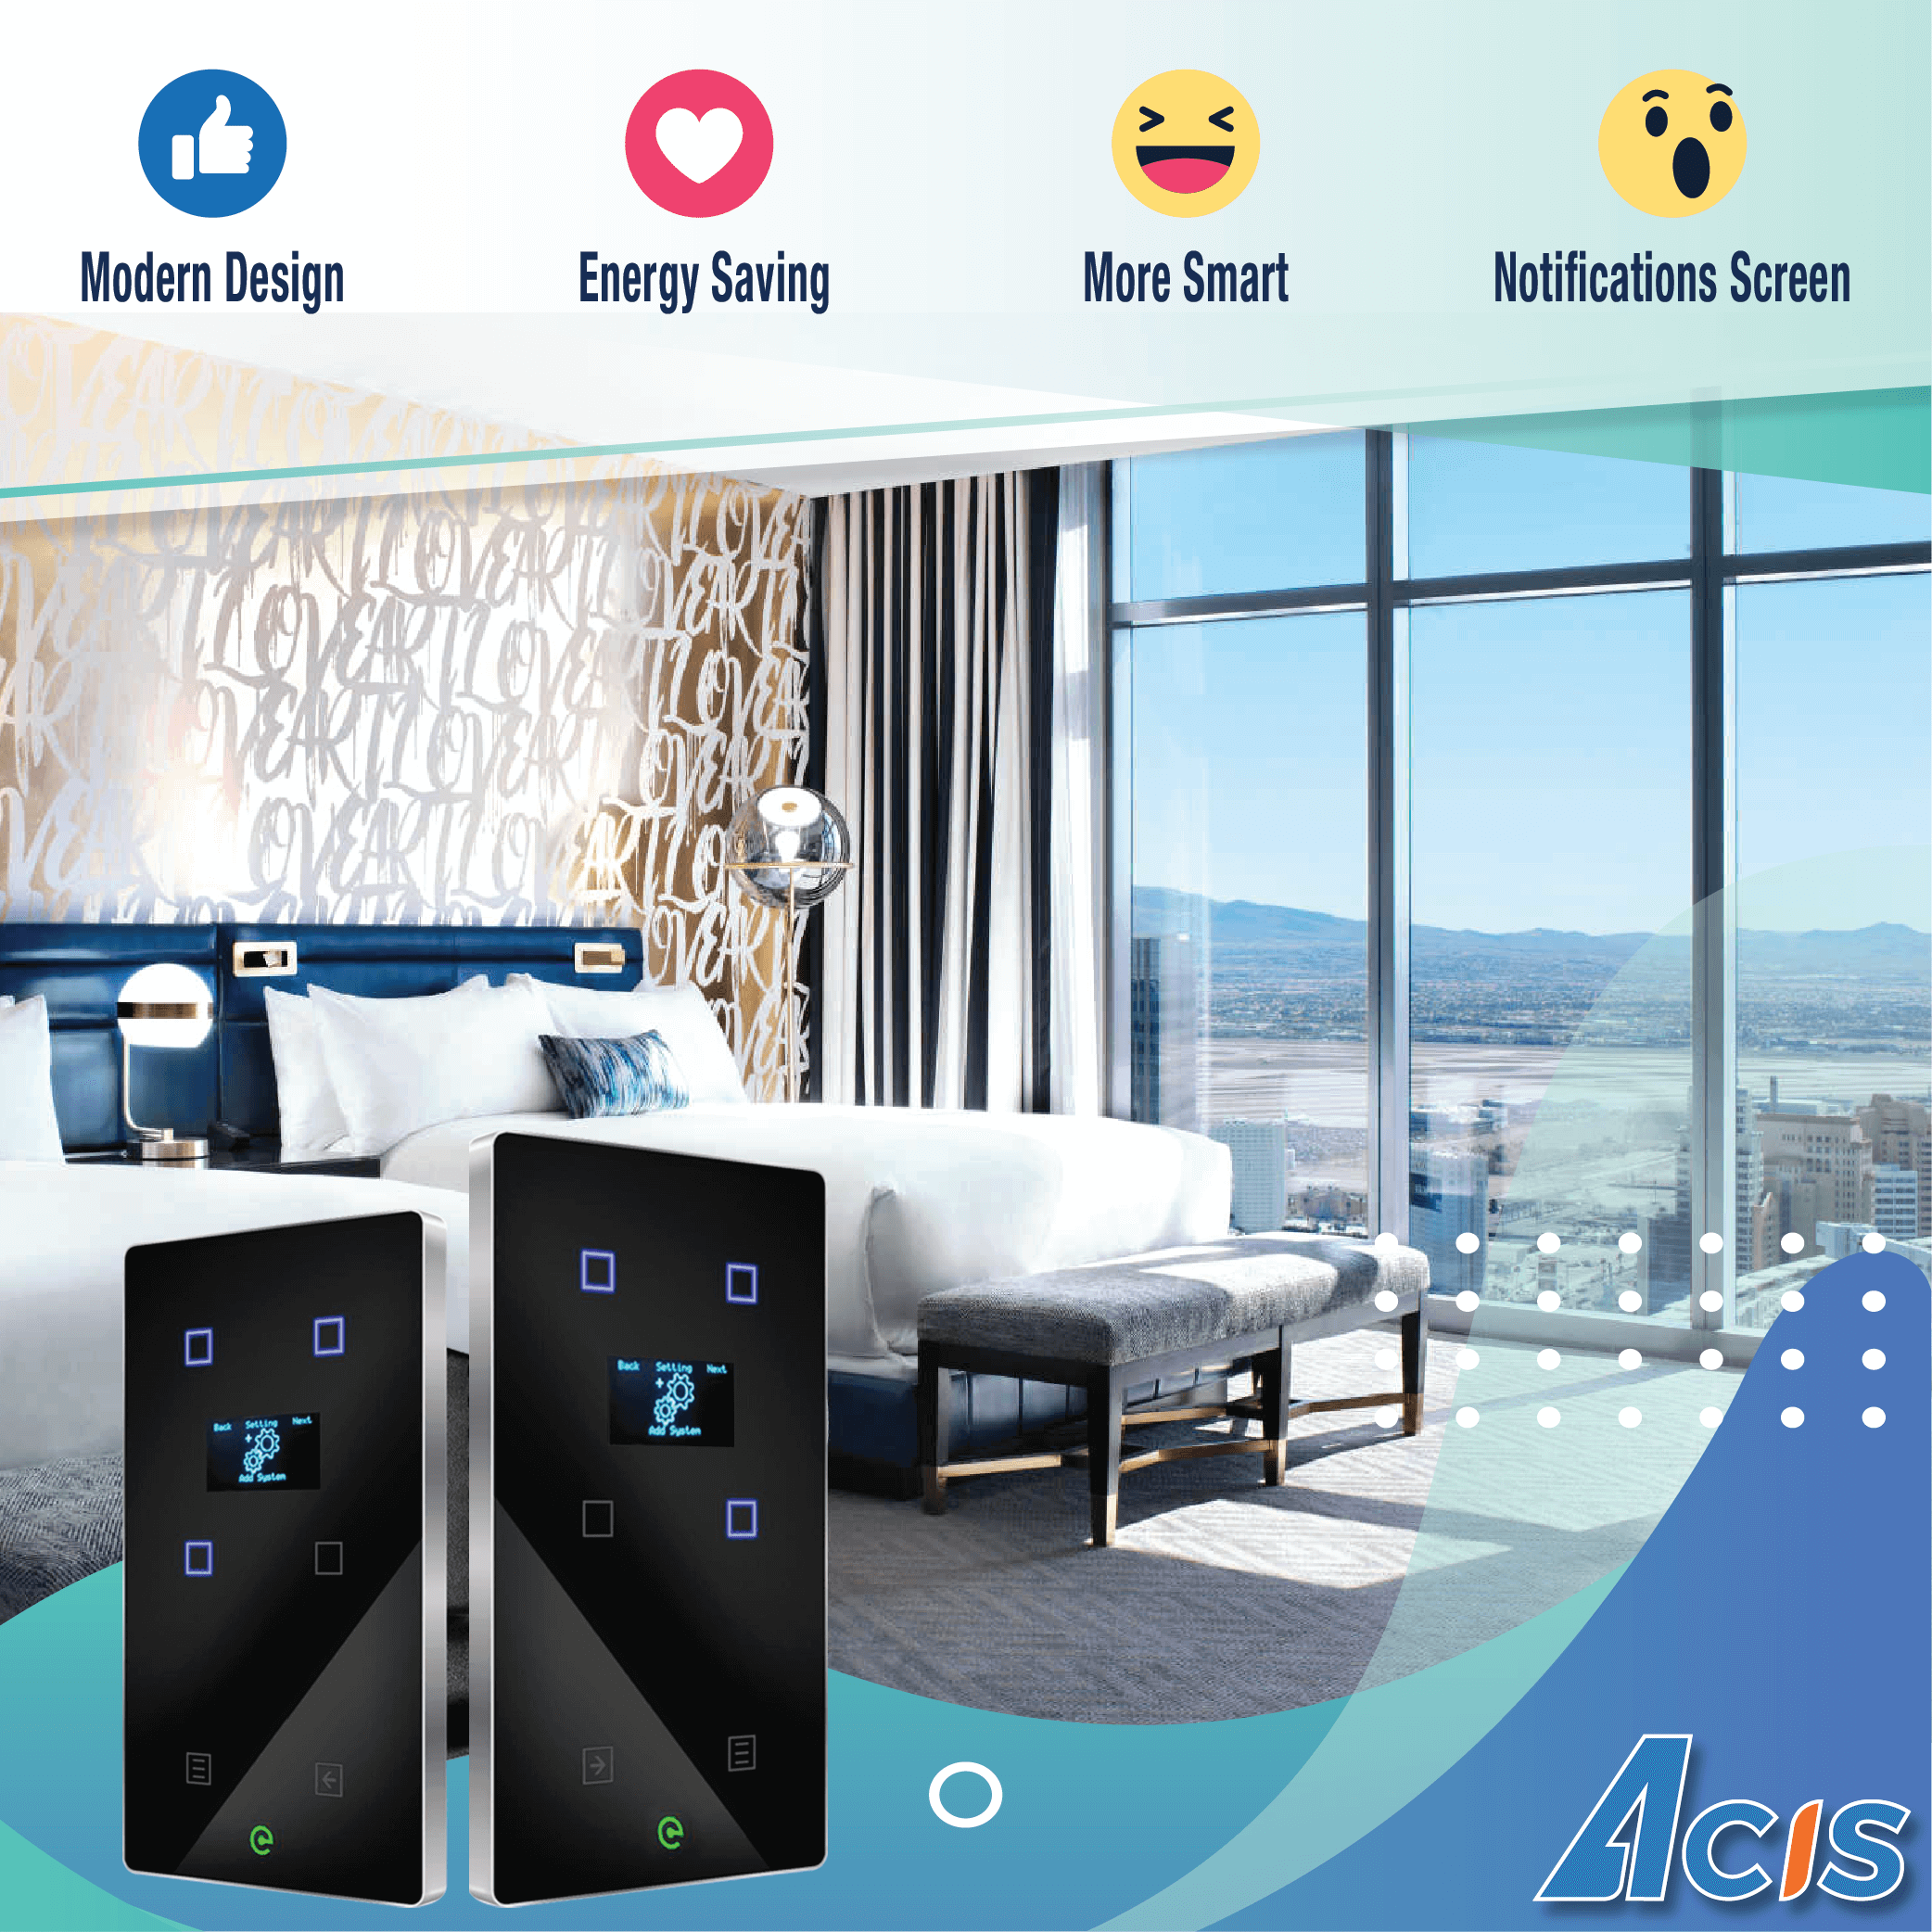 Acis Provides Smart Devices To Cam Ranh Mystery Project 8